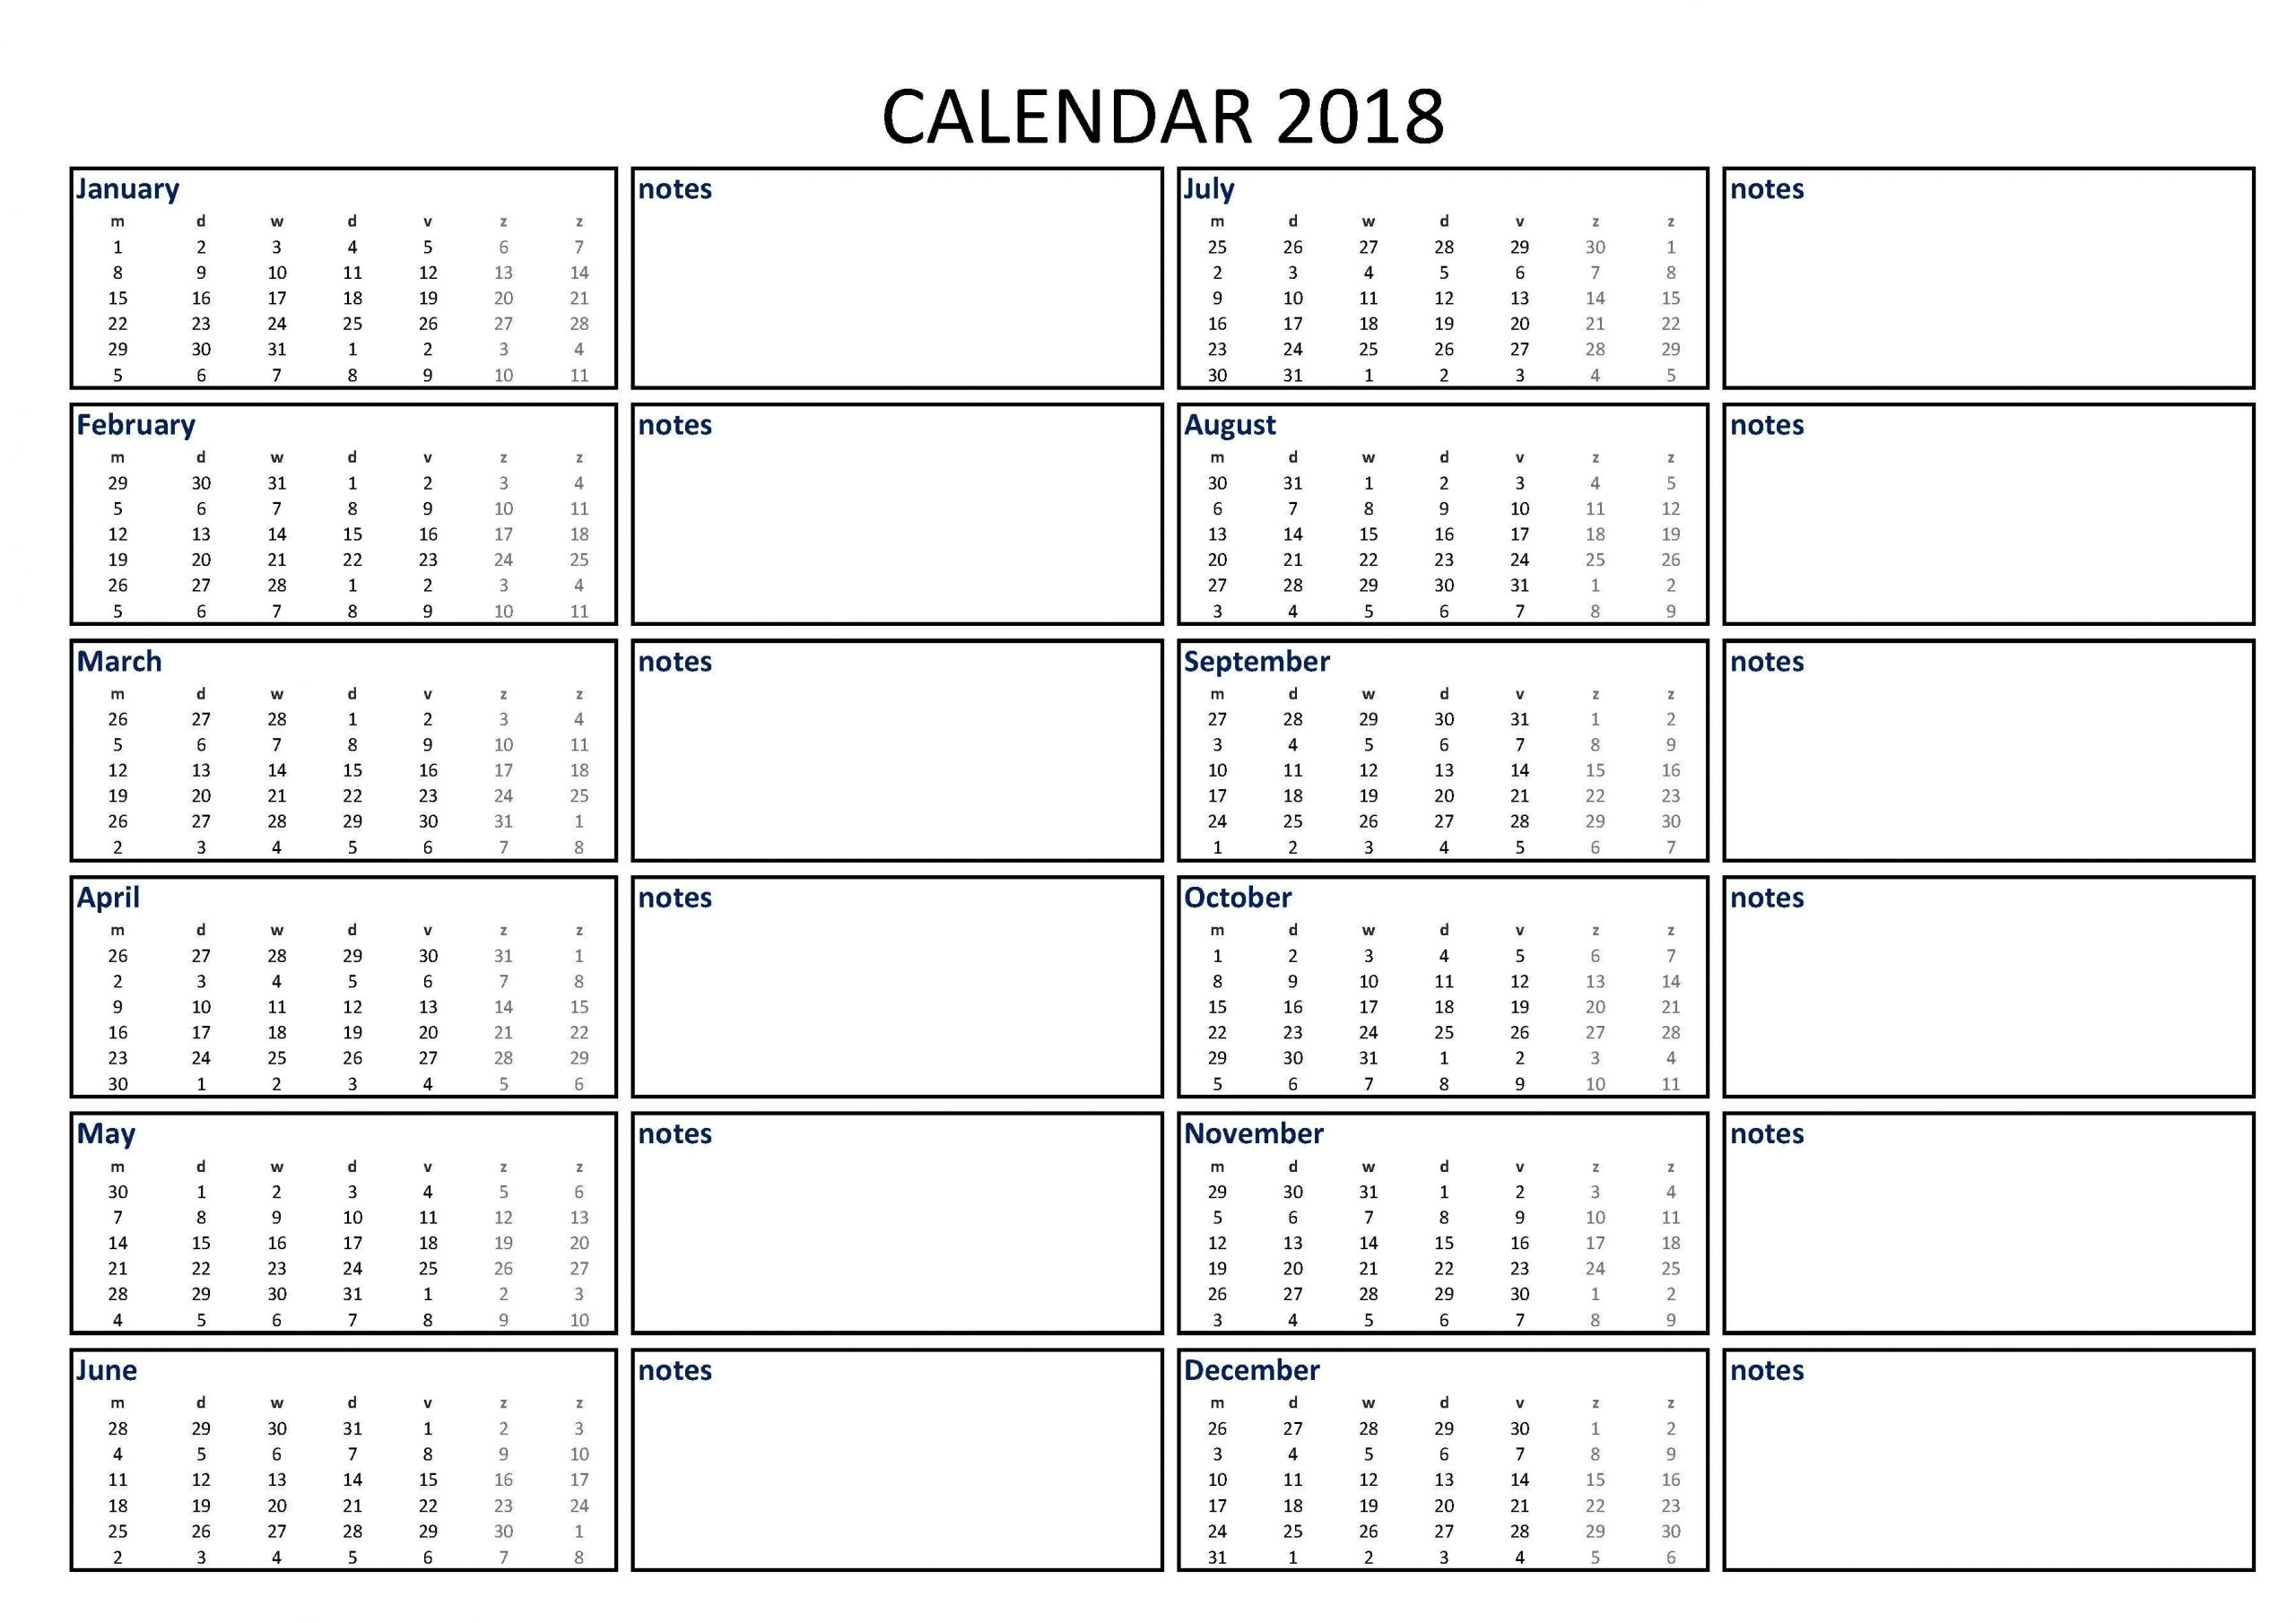 2018 Calendar Excel A3 With Notes - Download Our Free  A3 Calendar Template